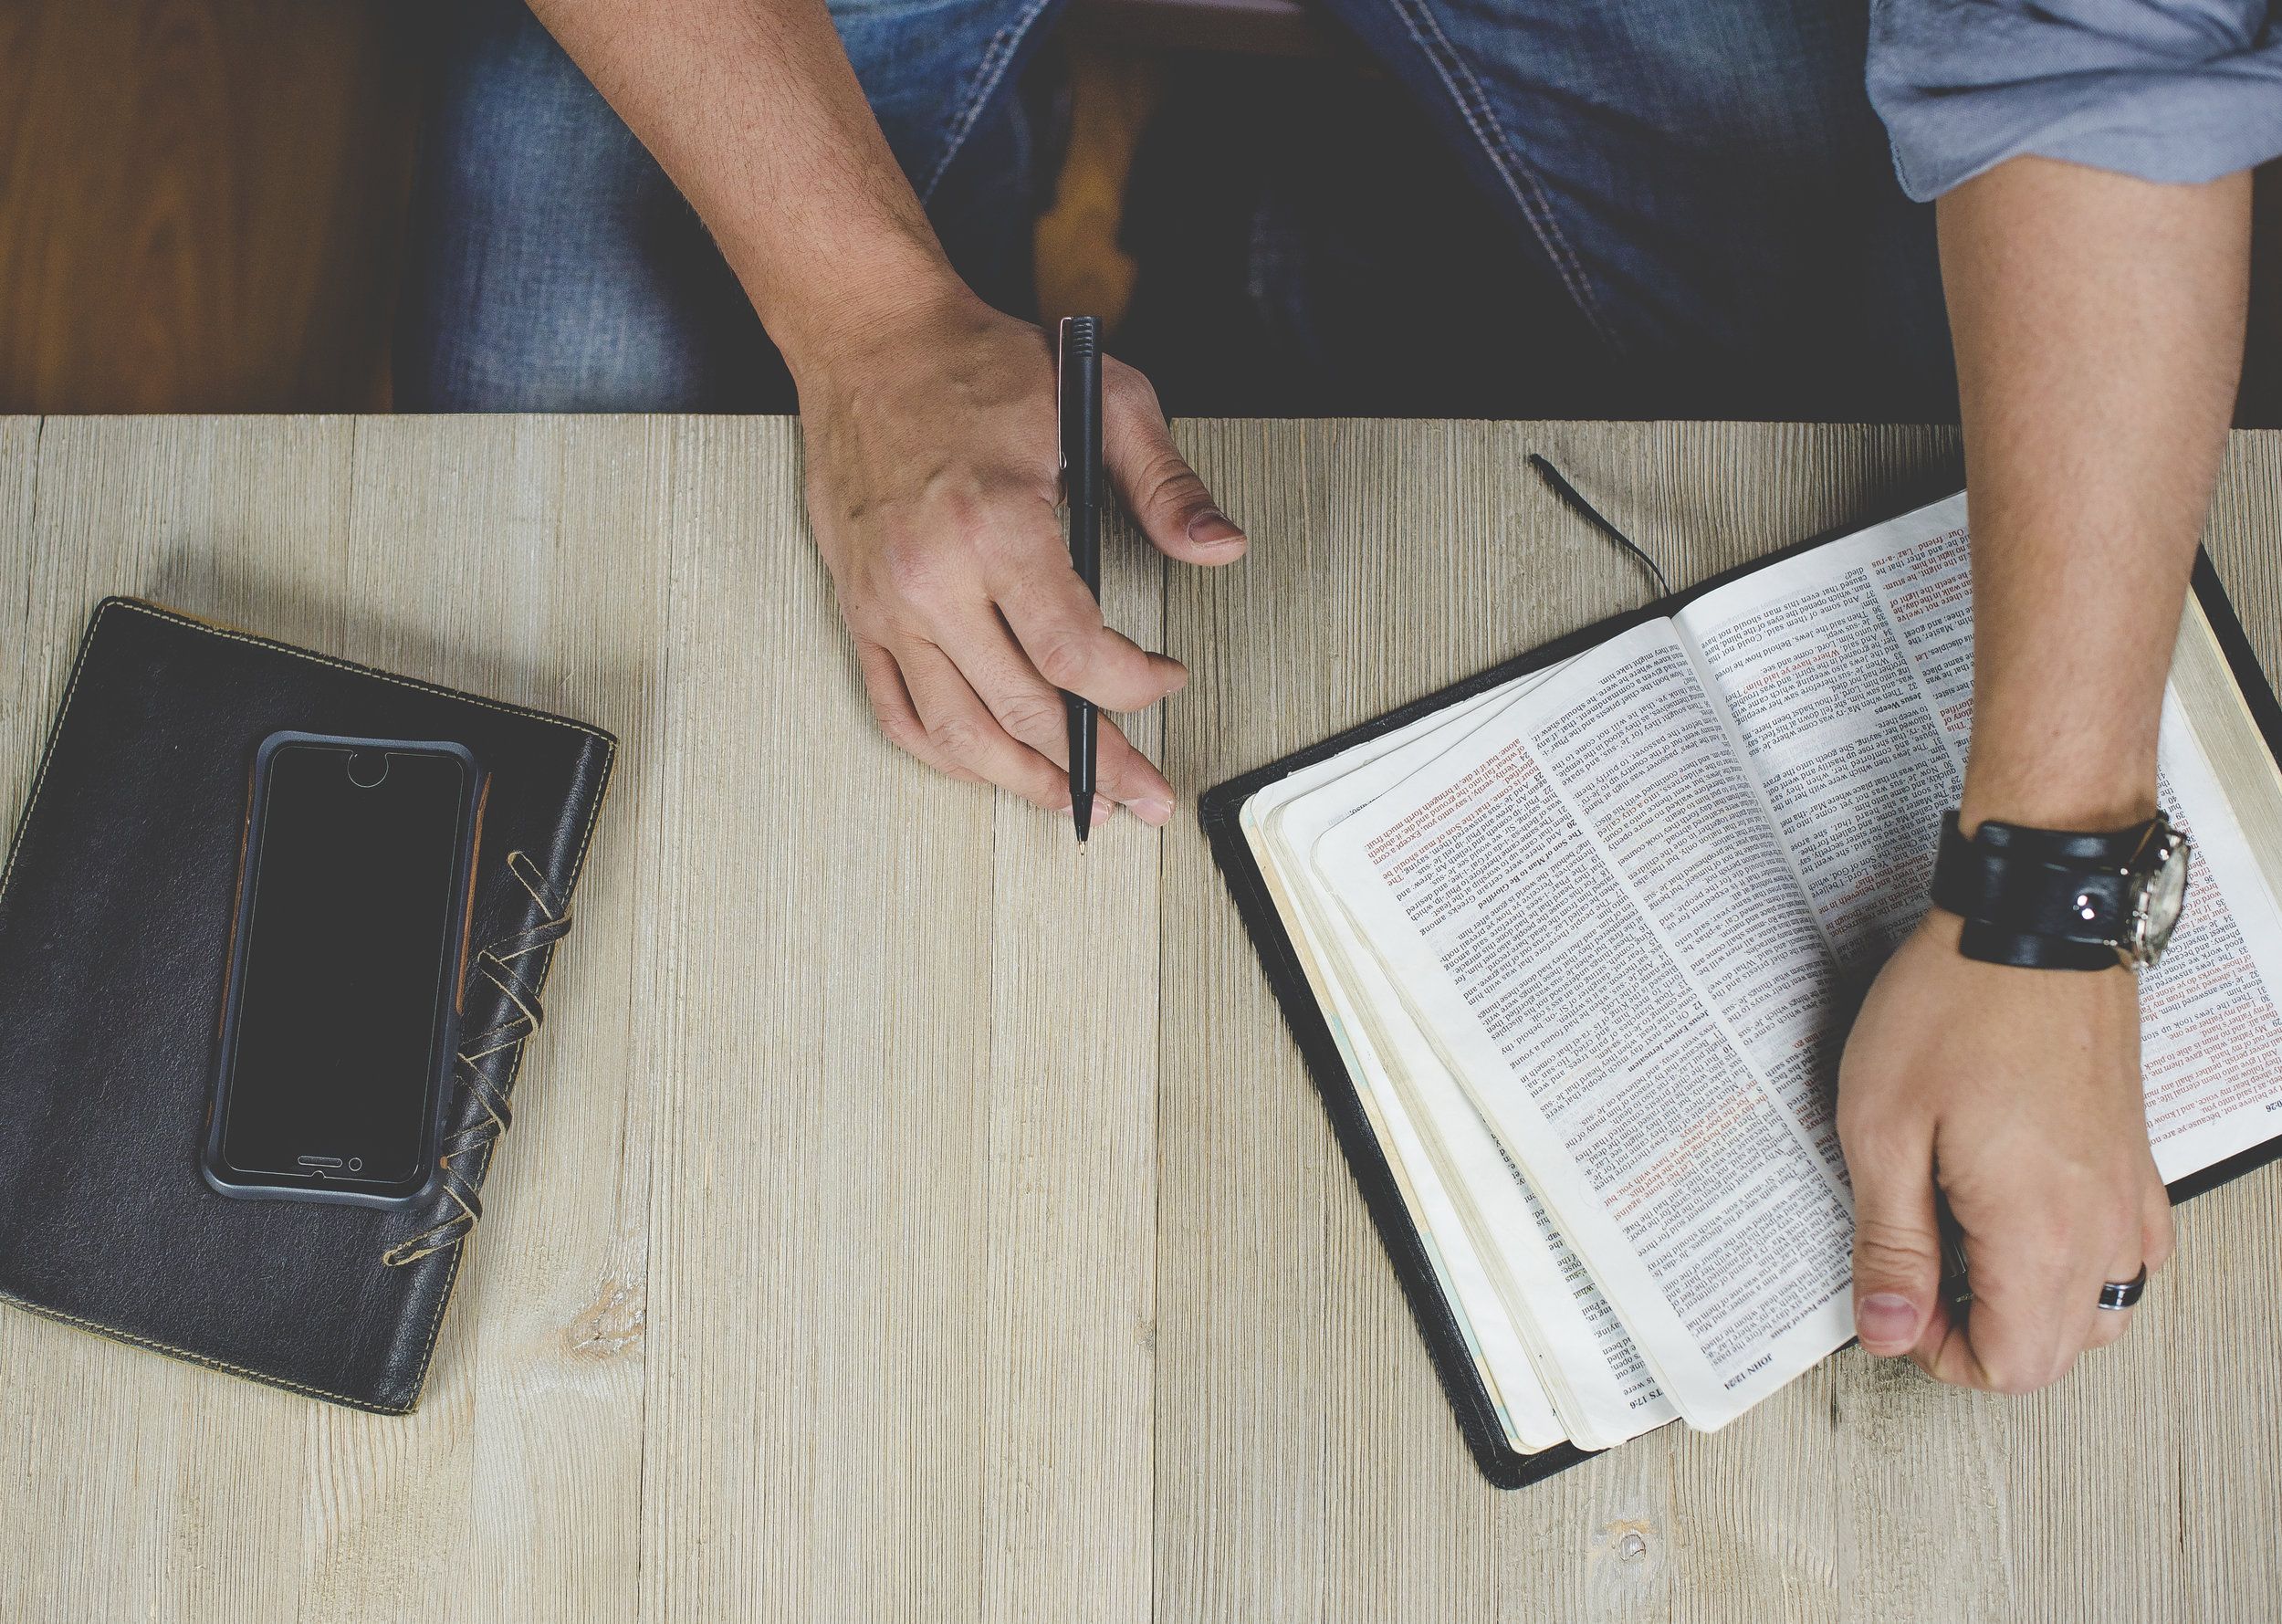 FUEL Men's Journaling - Every Tuesday @ 12pm at New Life Church